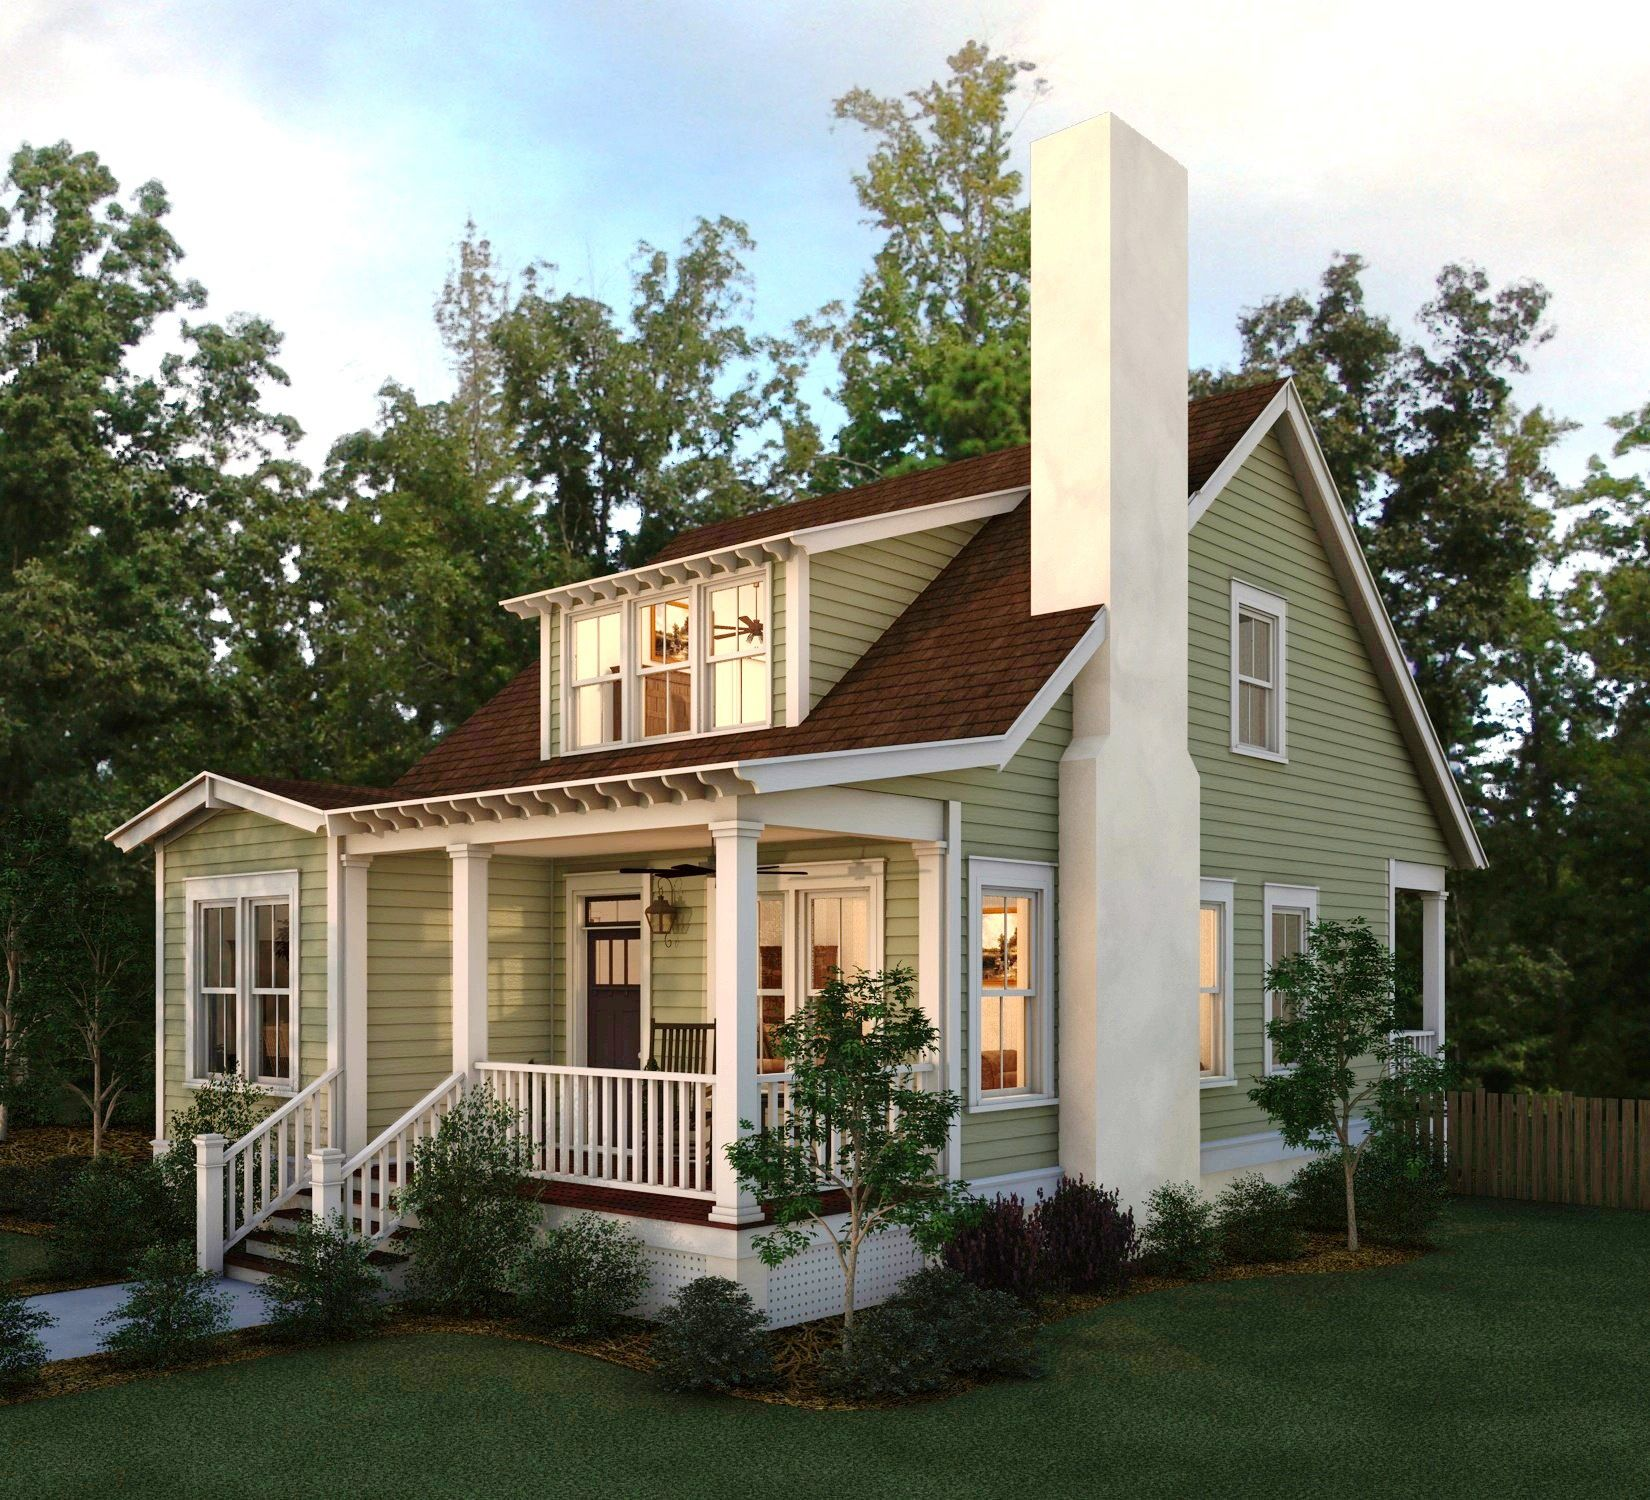 Dream Houses | Cottage homes, Cute house, Cottage